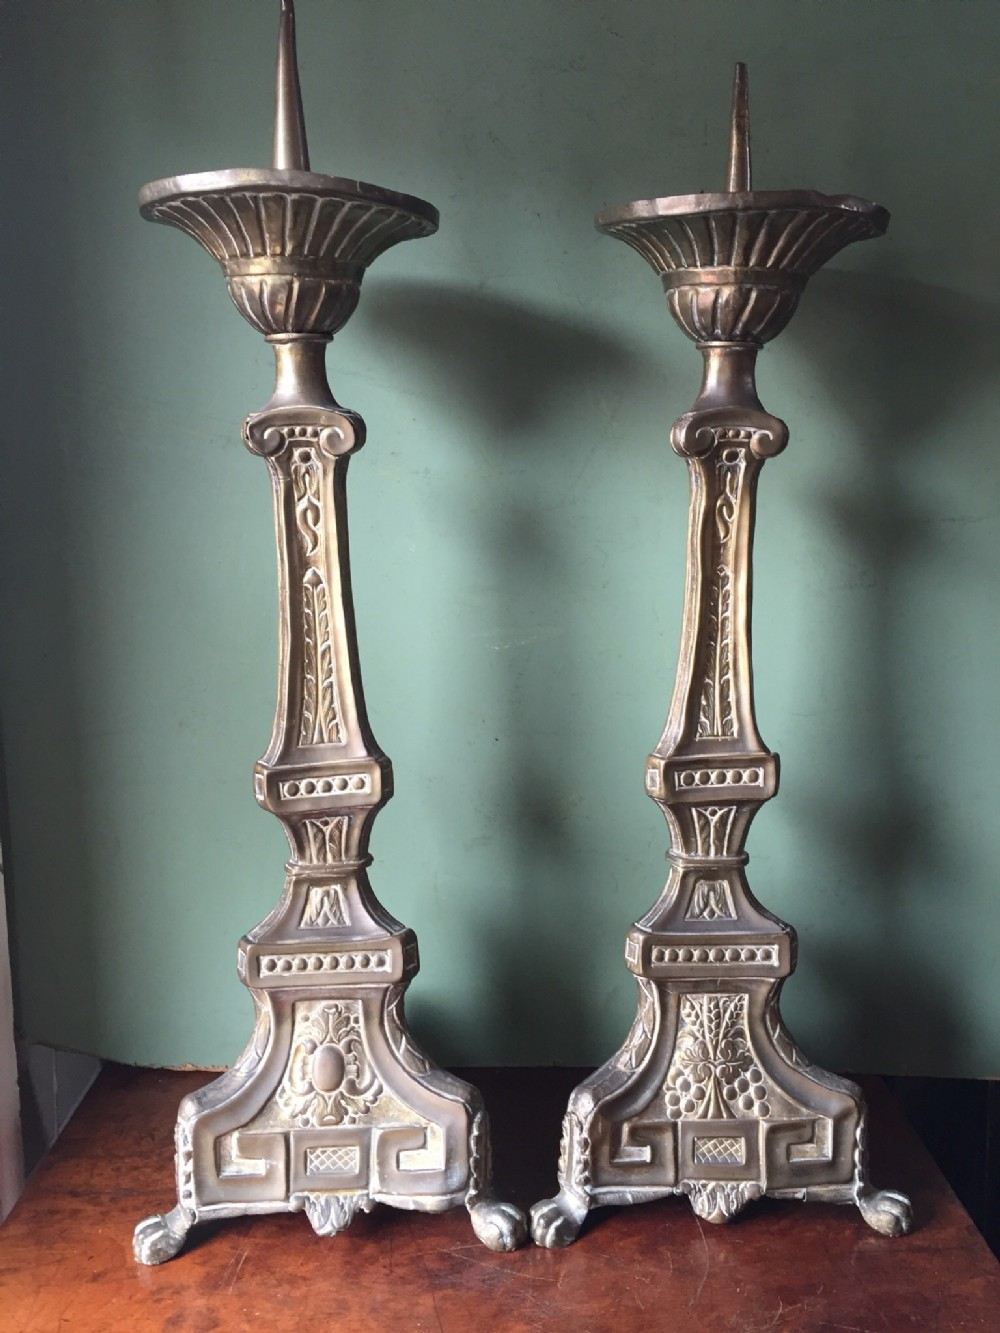 pair of c19th french pressed brass pricket candlesticks